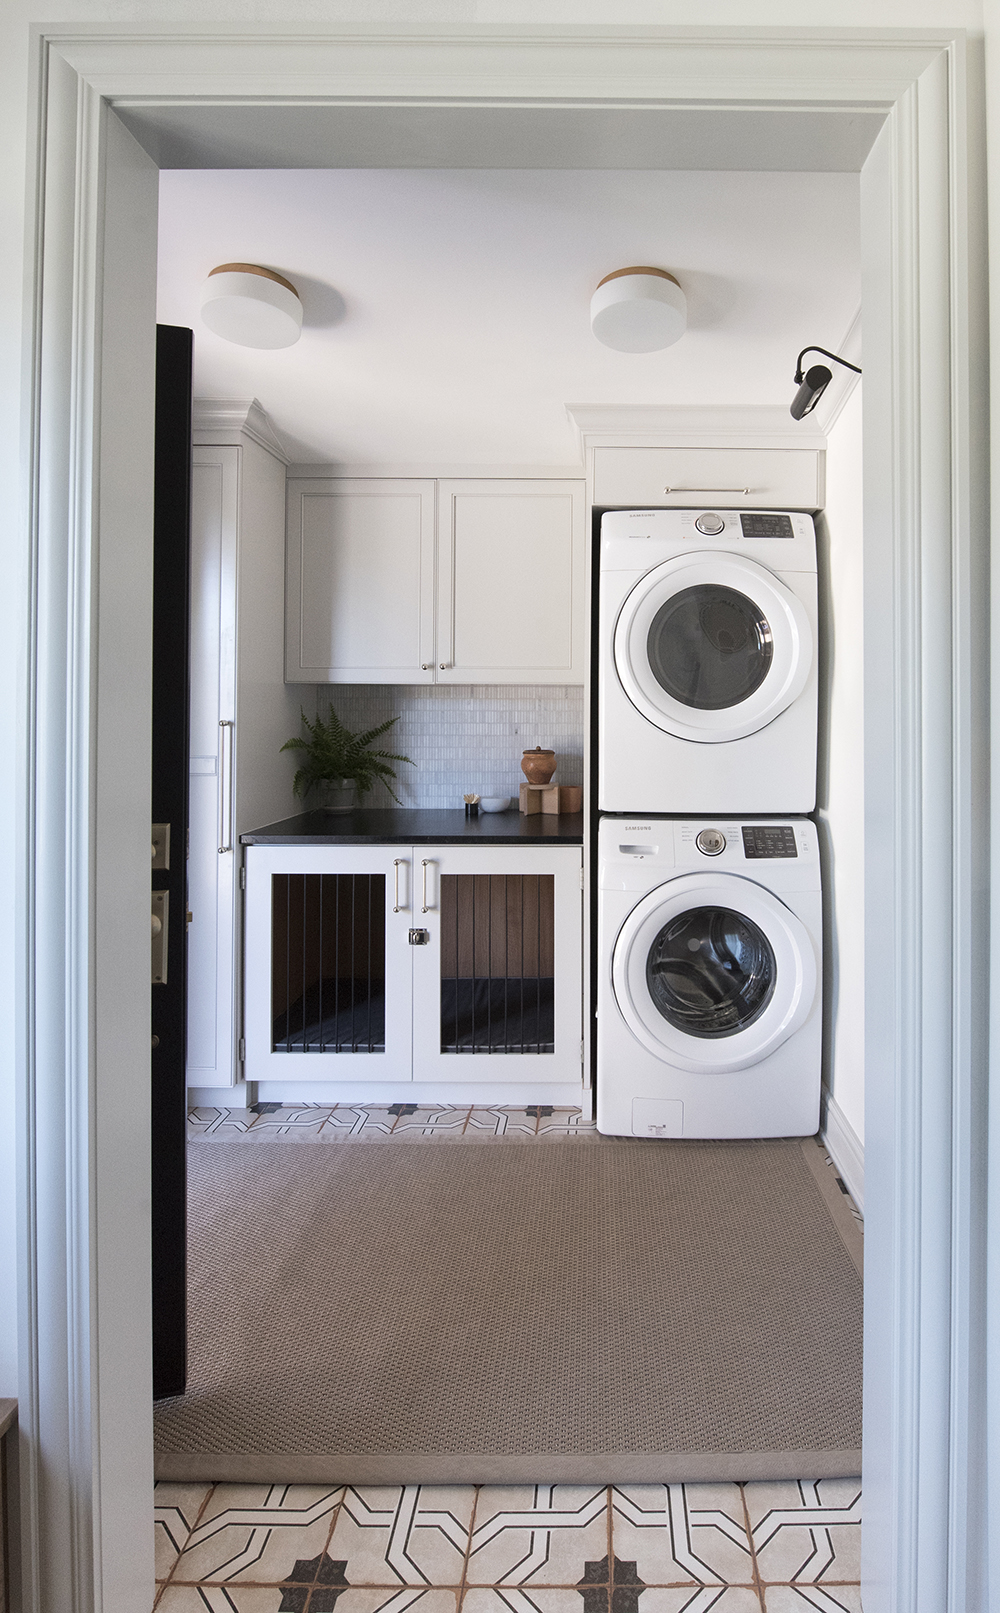 The Laundry Room : One Room Challenge - Room Reveal - roomfortuesday.com